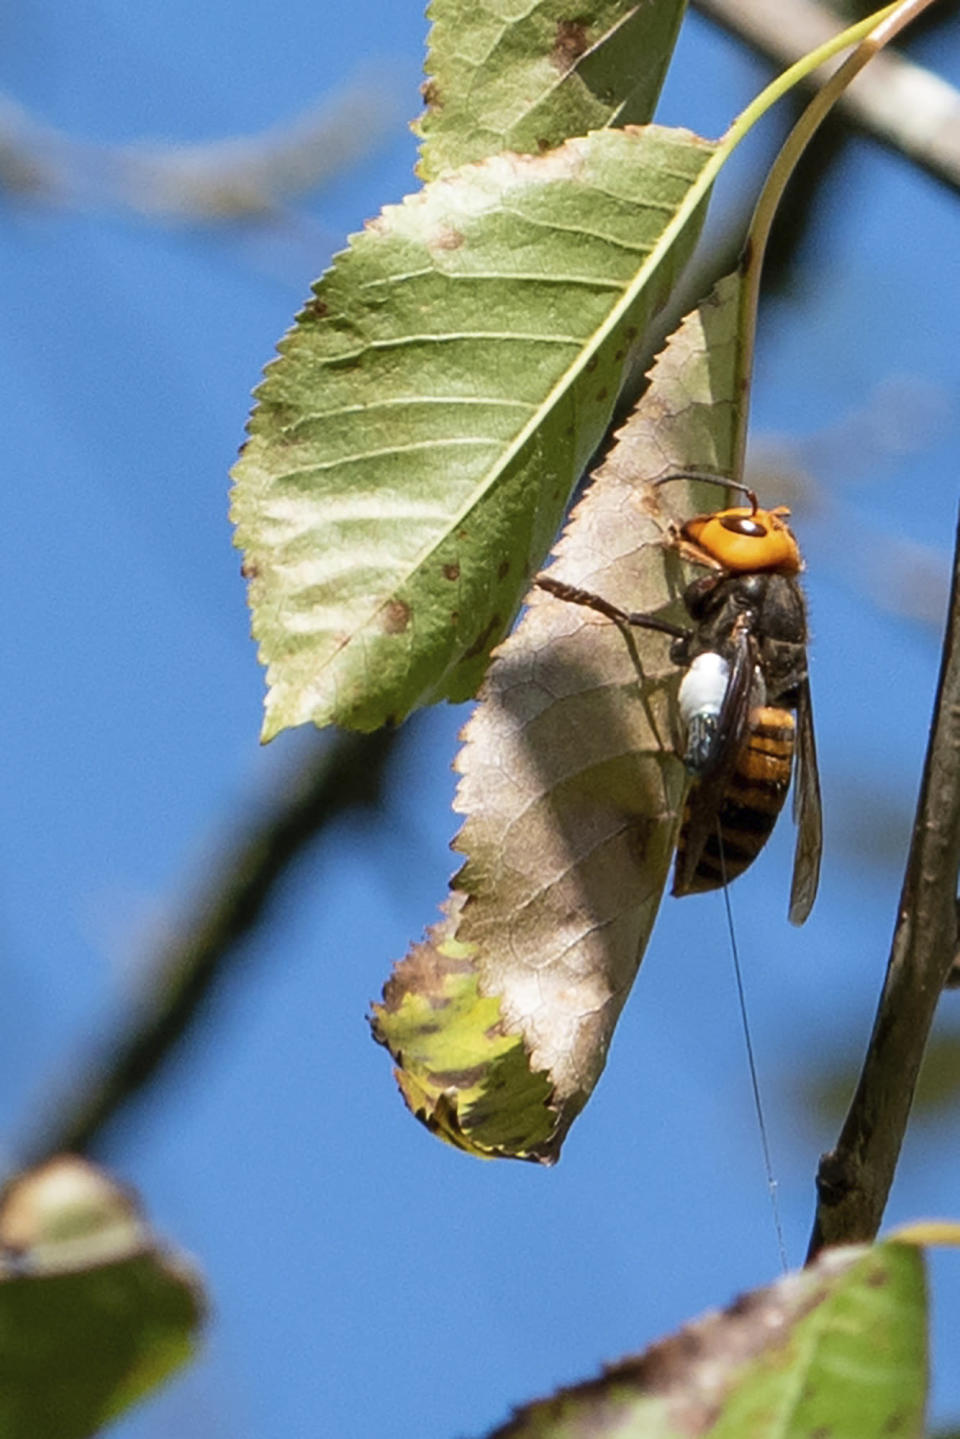 An Asian giant hornet that had a tracking device attached by workers with the Washington State Agriculture Department near Blaine, Wash., Oct. 22, 2020. (Karla Salp/Washington State Agriculture Dept. via The New York Times)